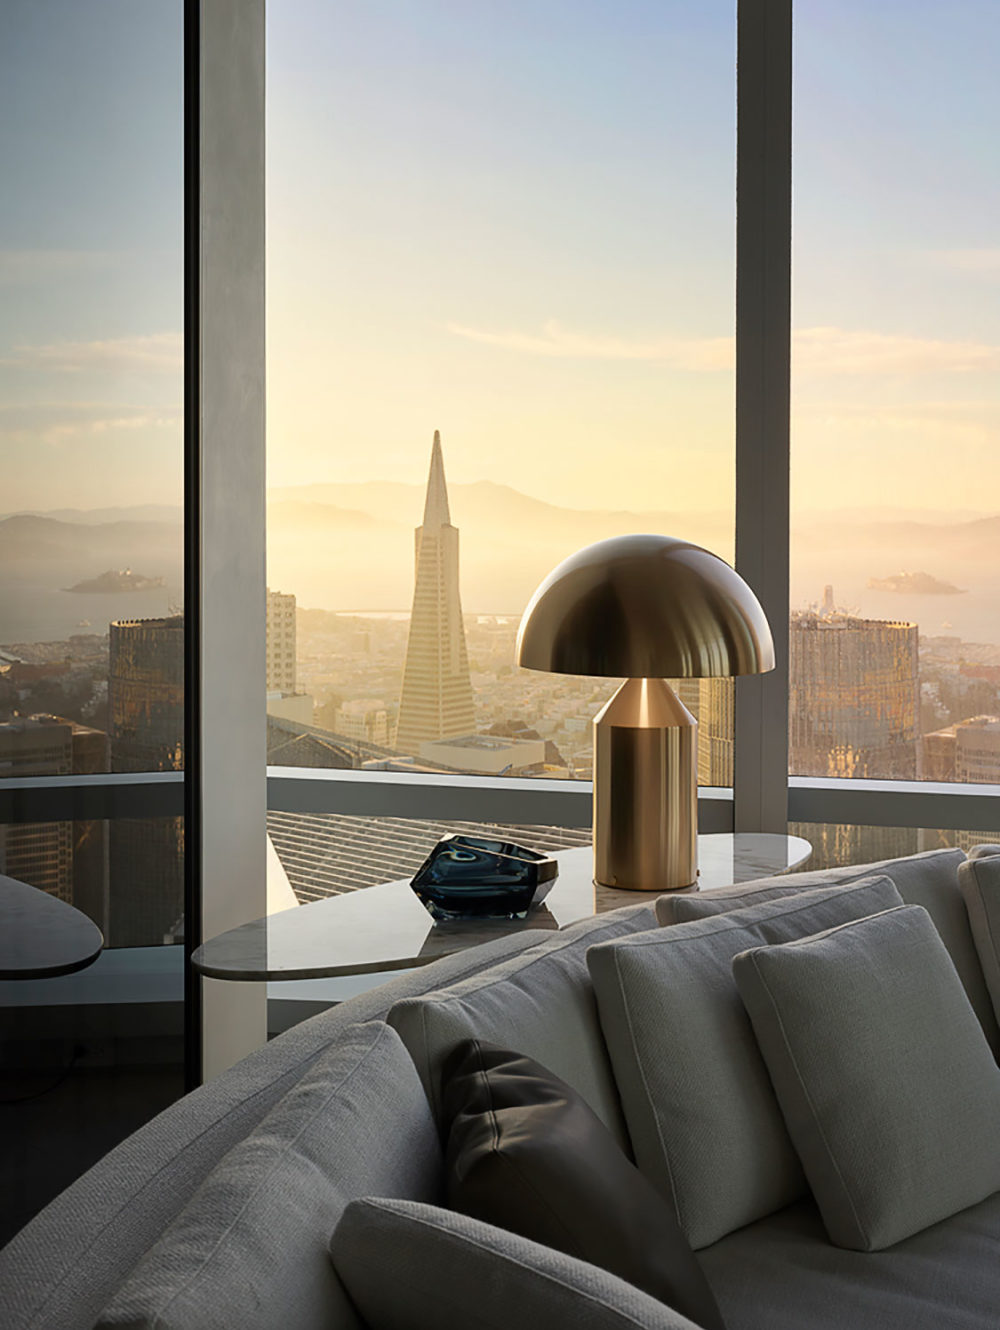 Closeup interior view of residential living room inside 181 Fremont with a view of San Francisco during the sunrise.